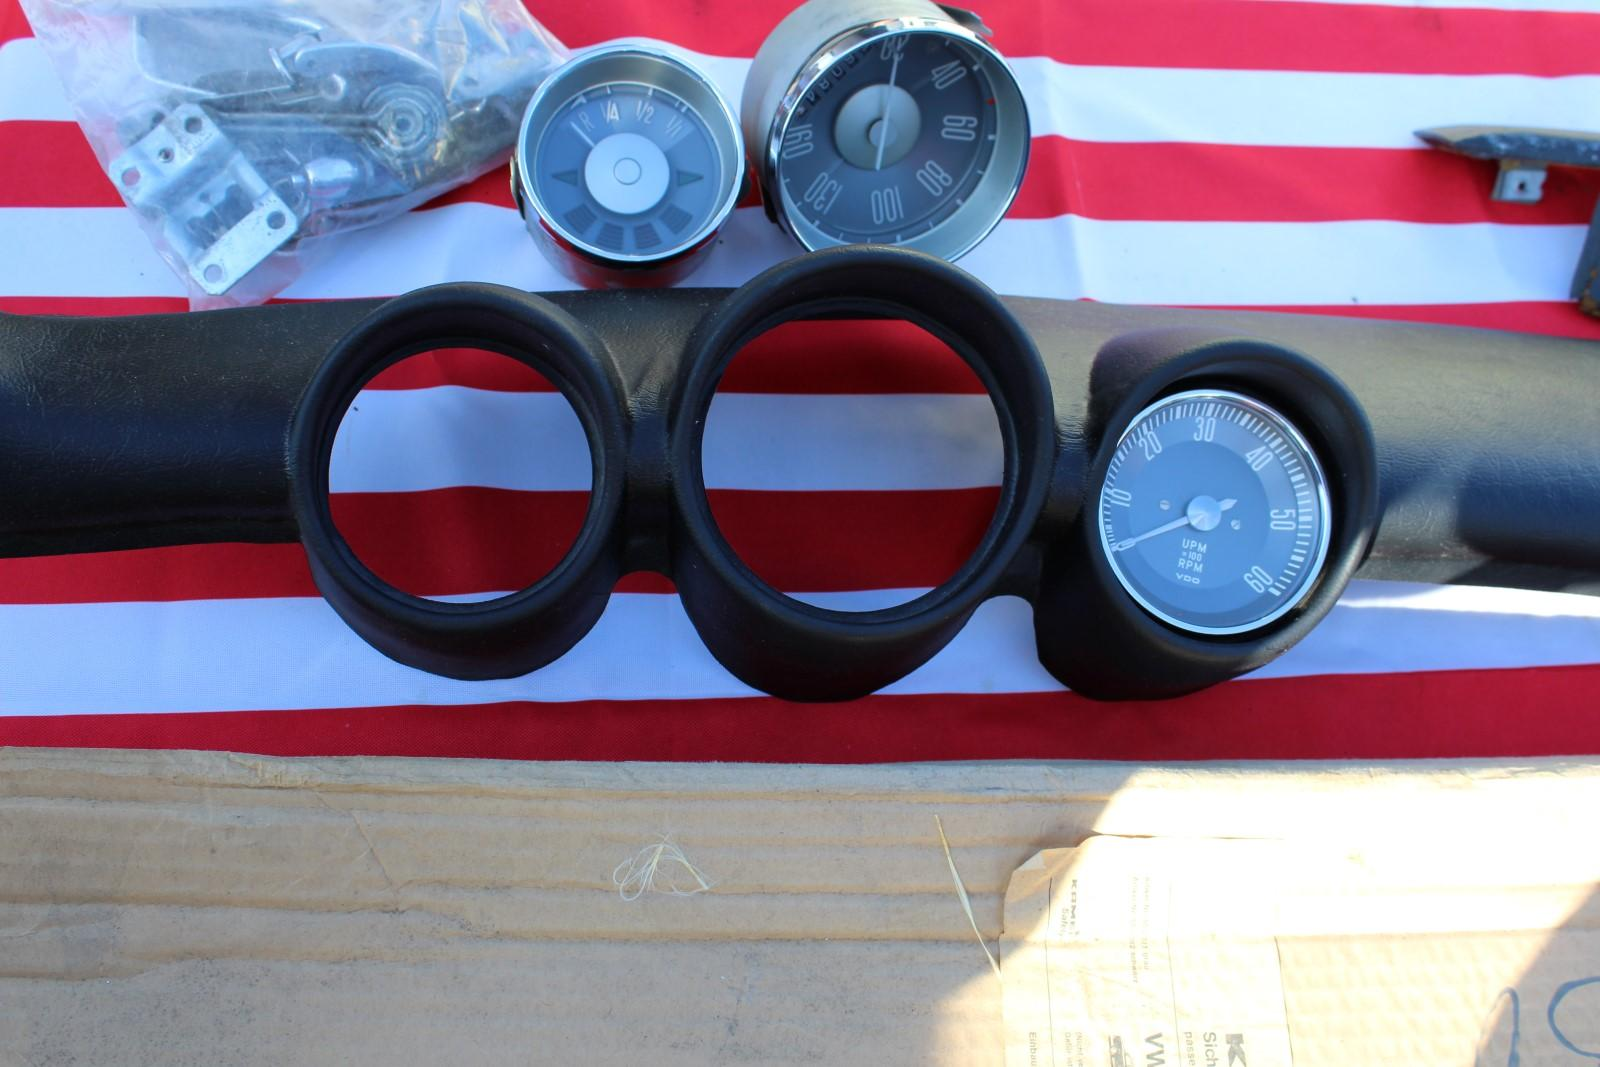 Swap meet photos - Type 3 tach